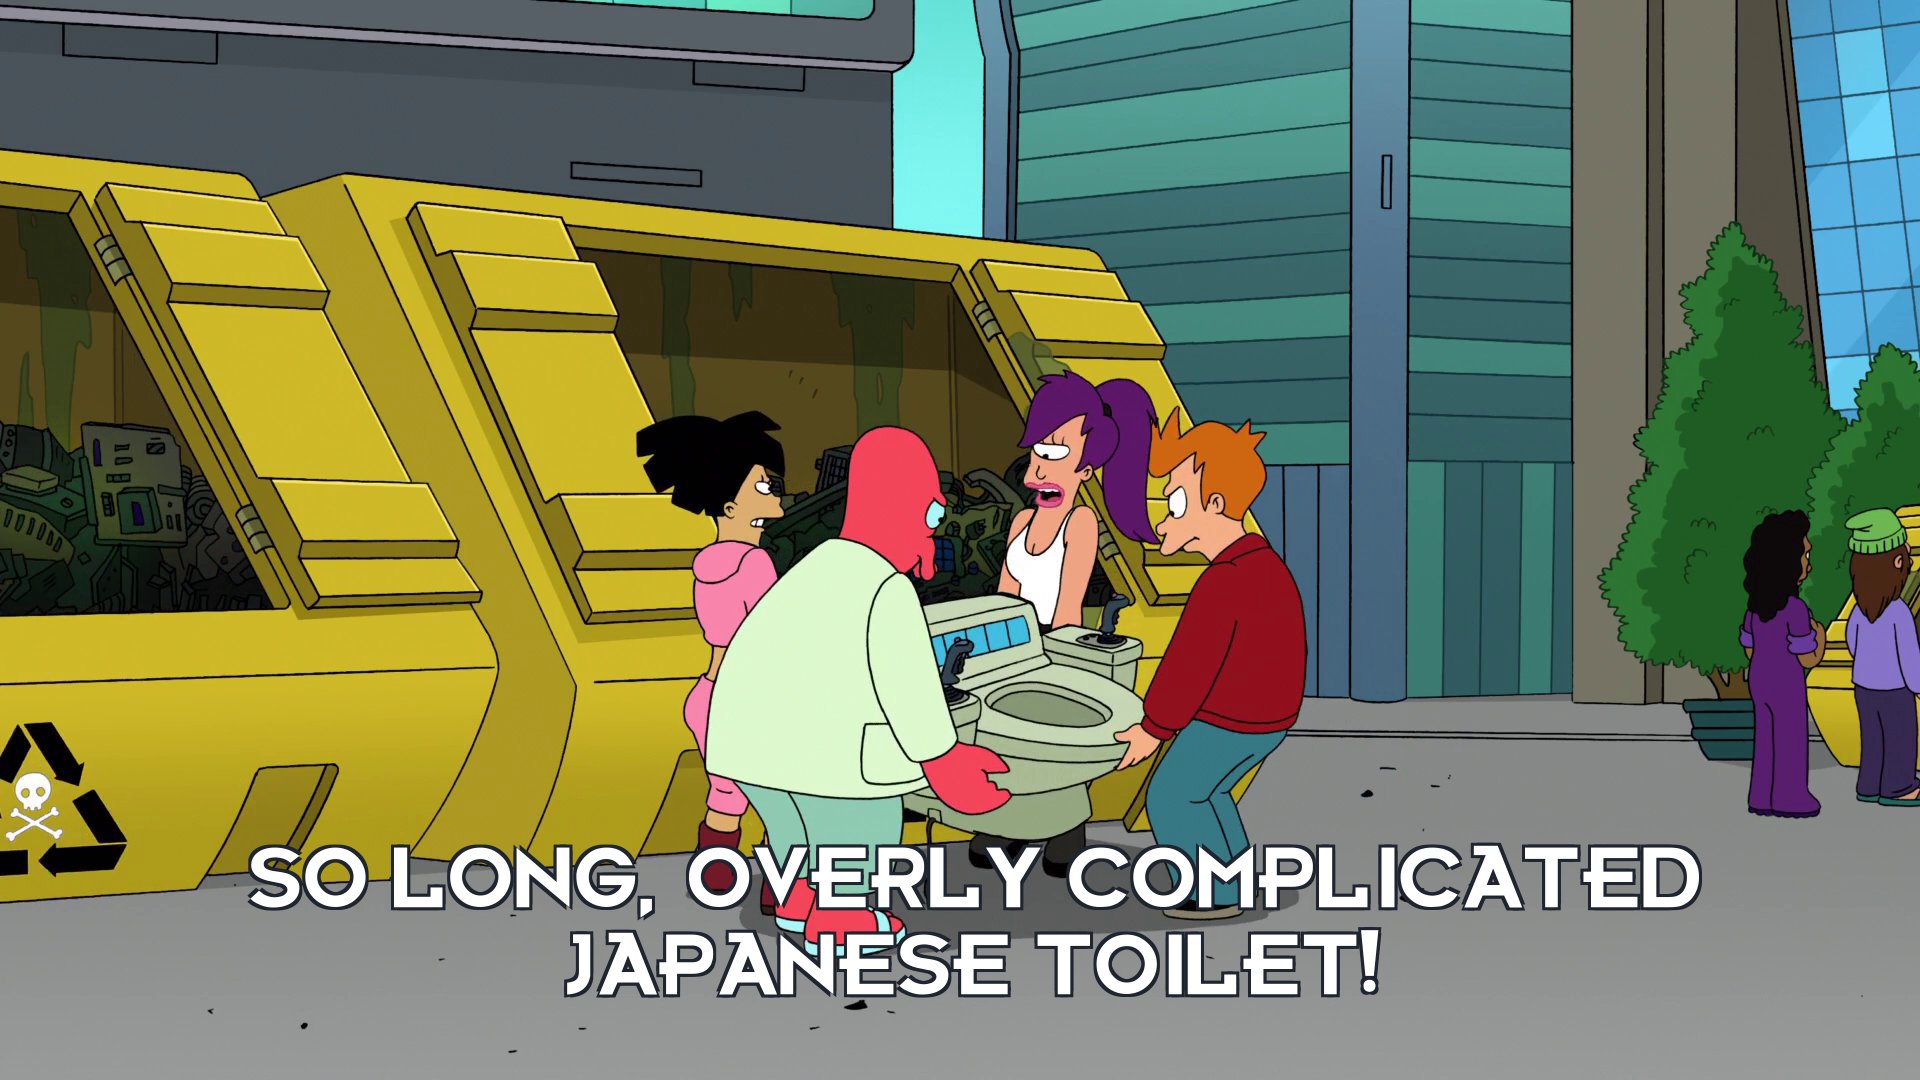 Turanga Leela: So long, overly complicated Japanese toilet!